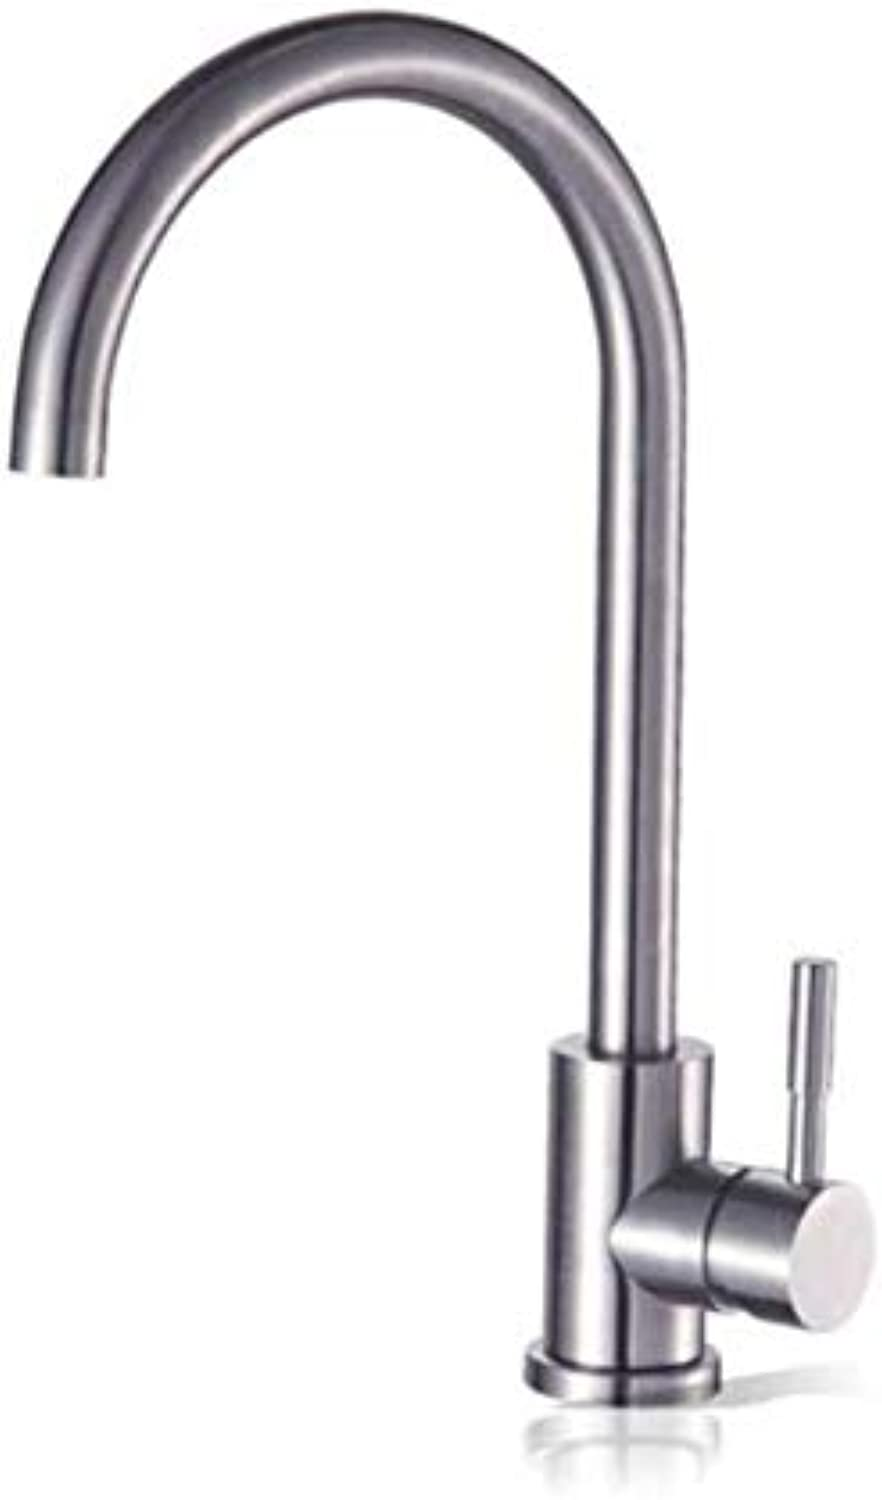 Chrome-Plated Vintage Brass Sink Bathroom Sink Basin Lever Mixer Tap 304 Stainless Steel Cold and Hot Kitchen Faucet Washing Basin Sink Faucet